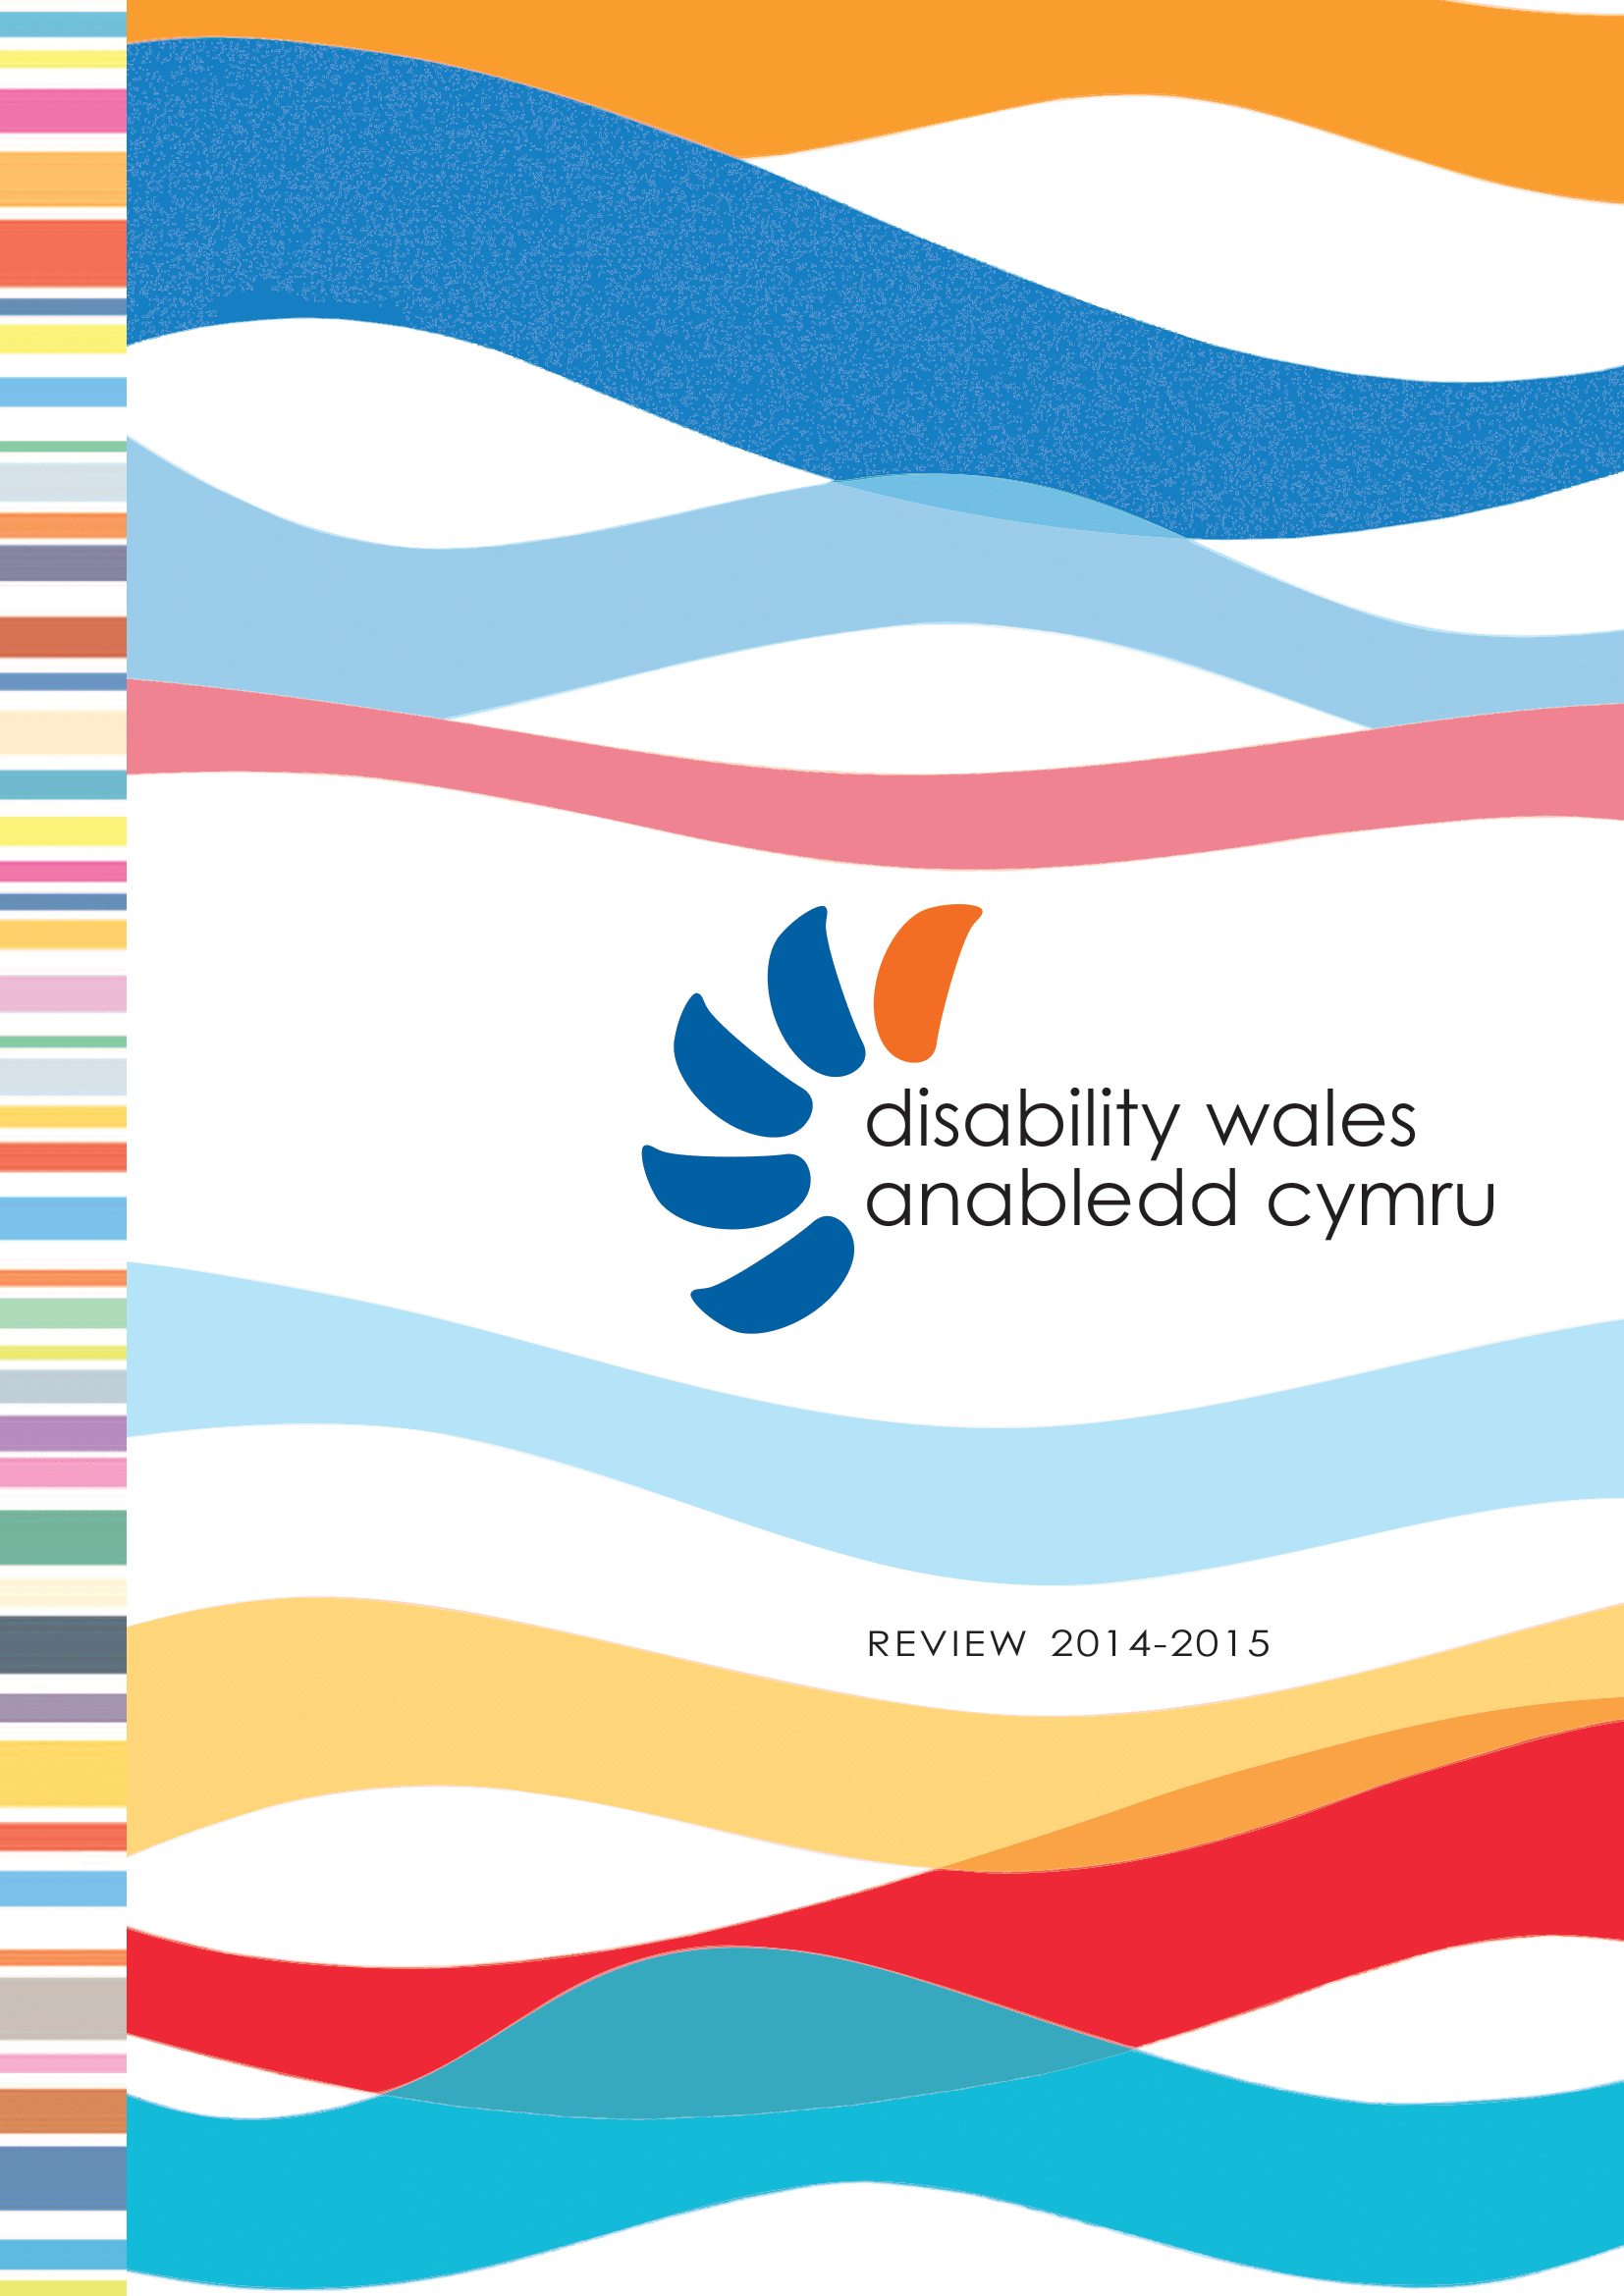 Image for DW Annual Report 2014-2015